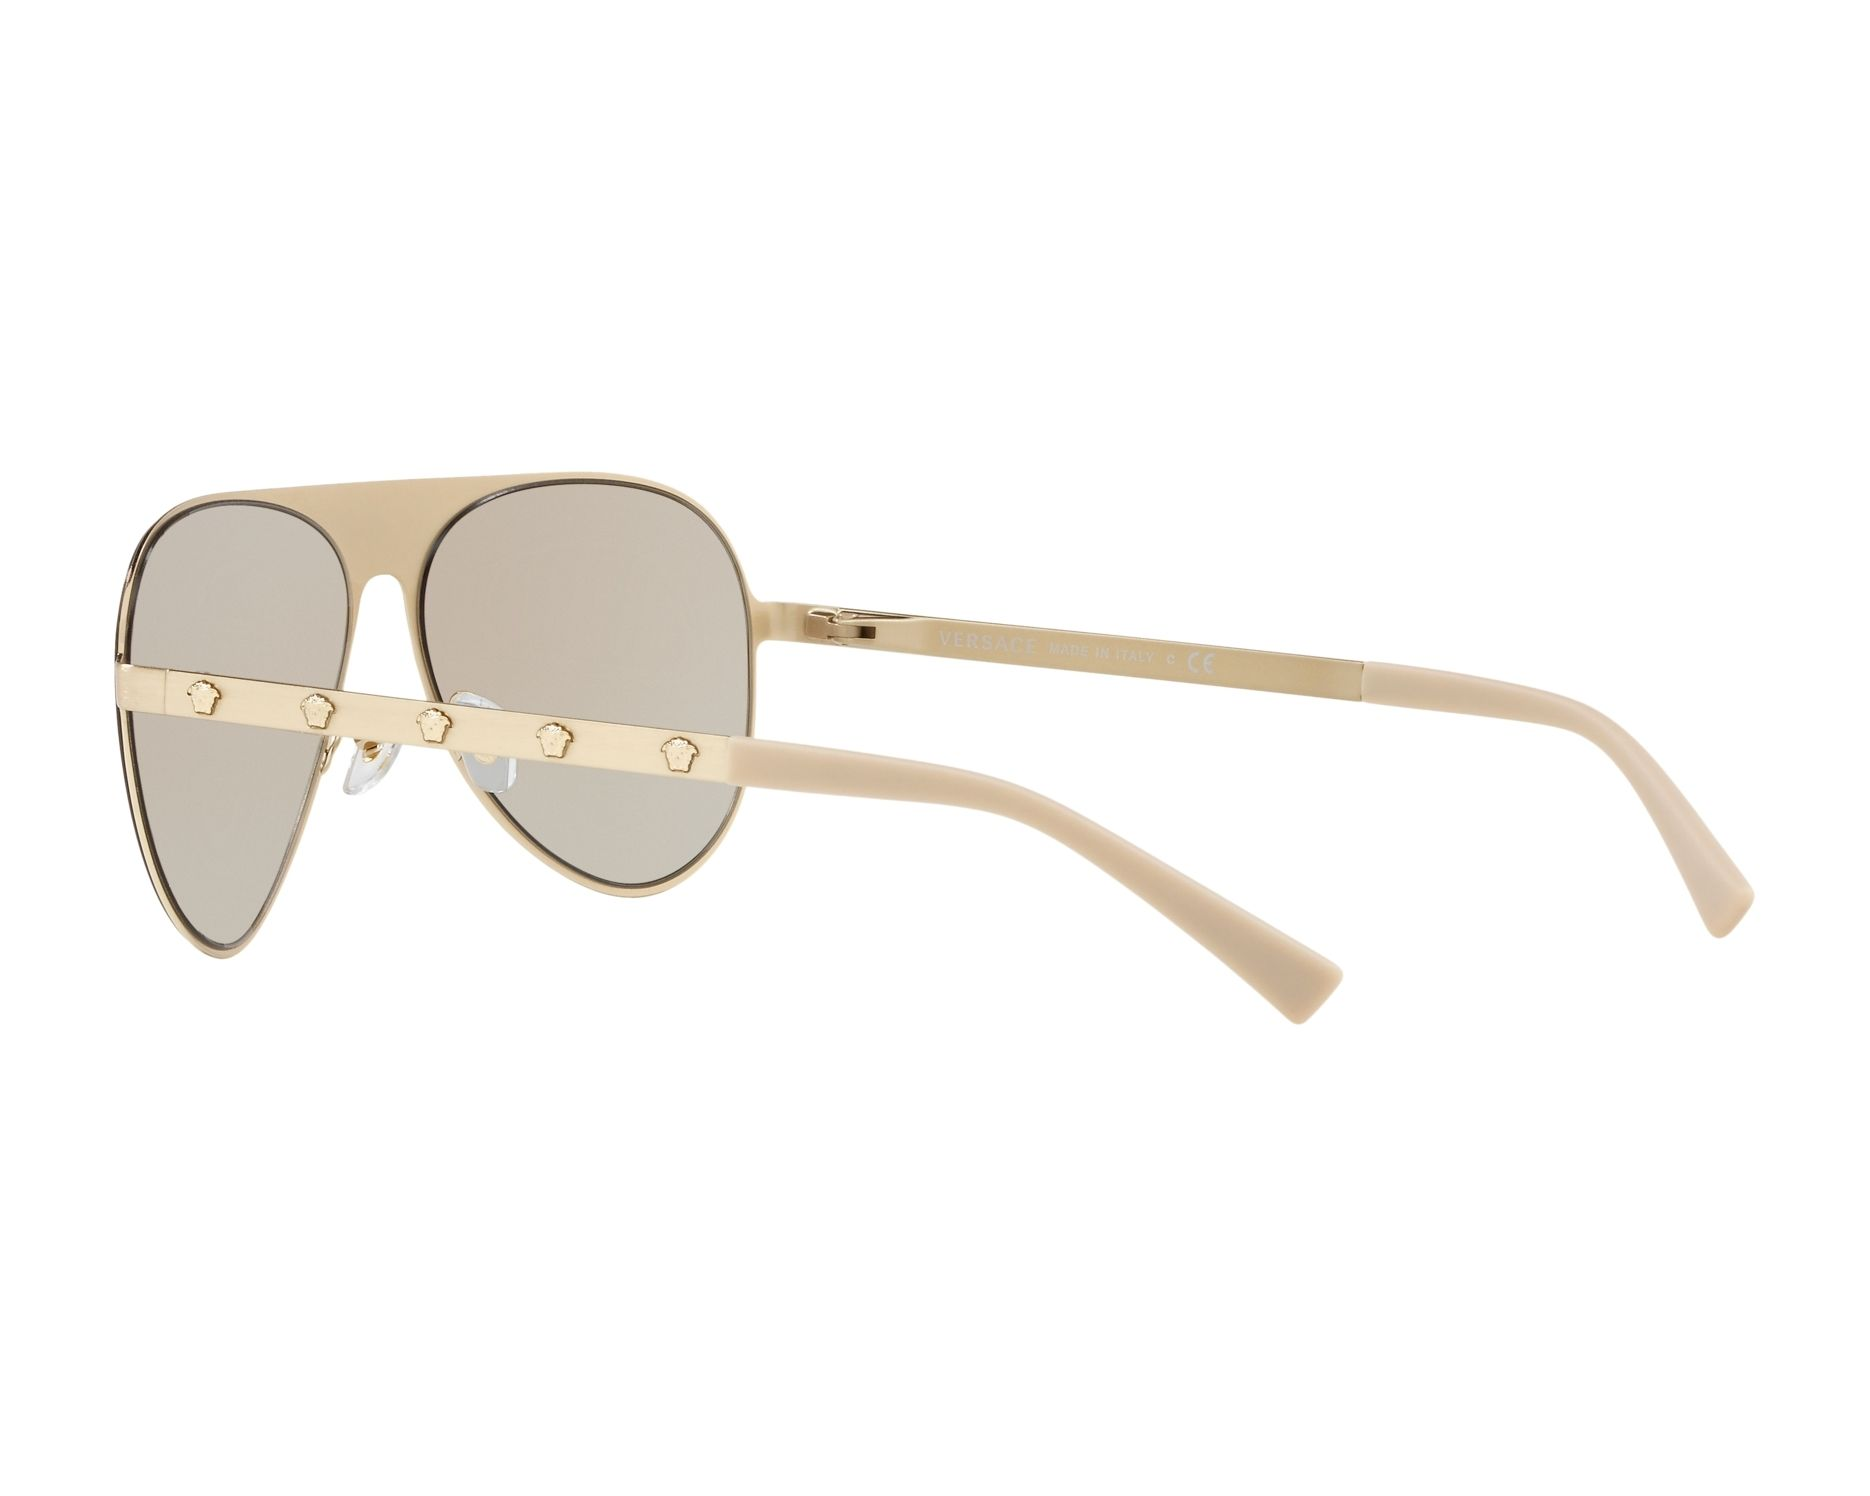 6fd5ceee7910 Sunglasses Versace VE-2189 1339 3 59-14 Gold 360 degree view 5